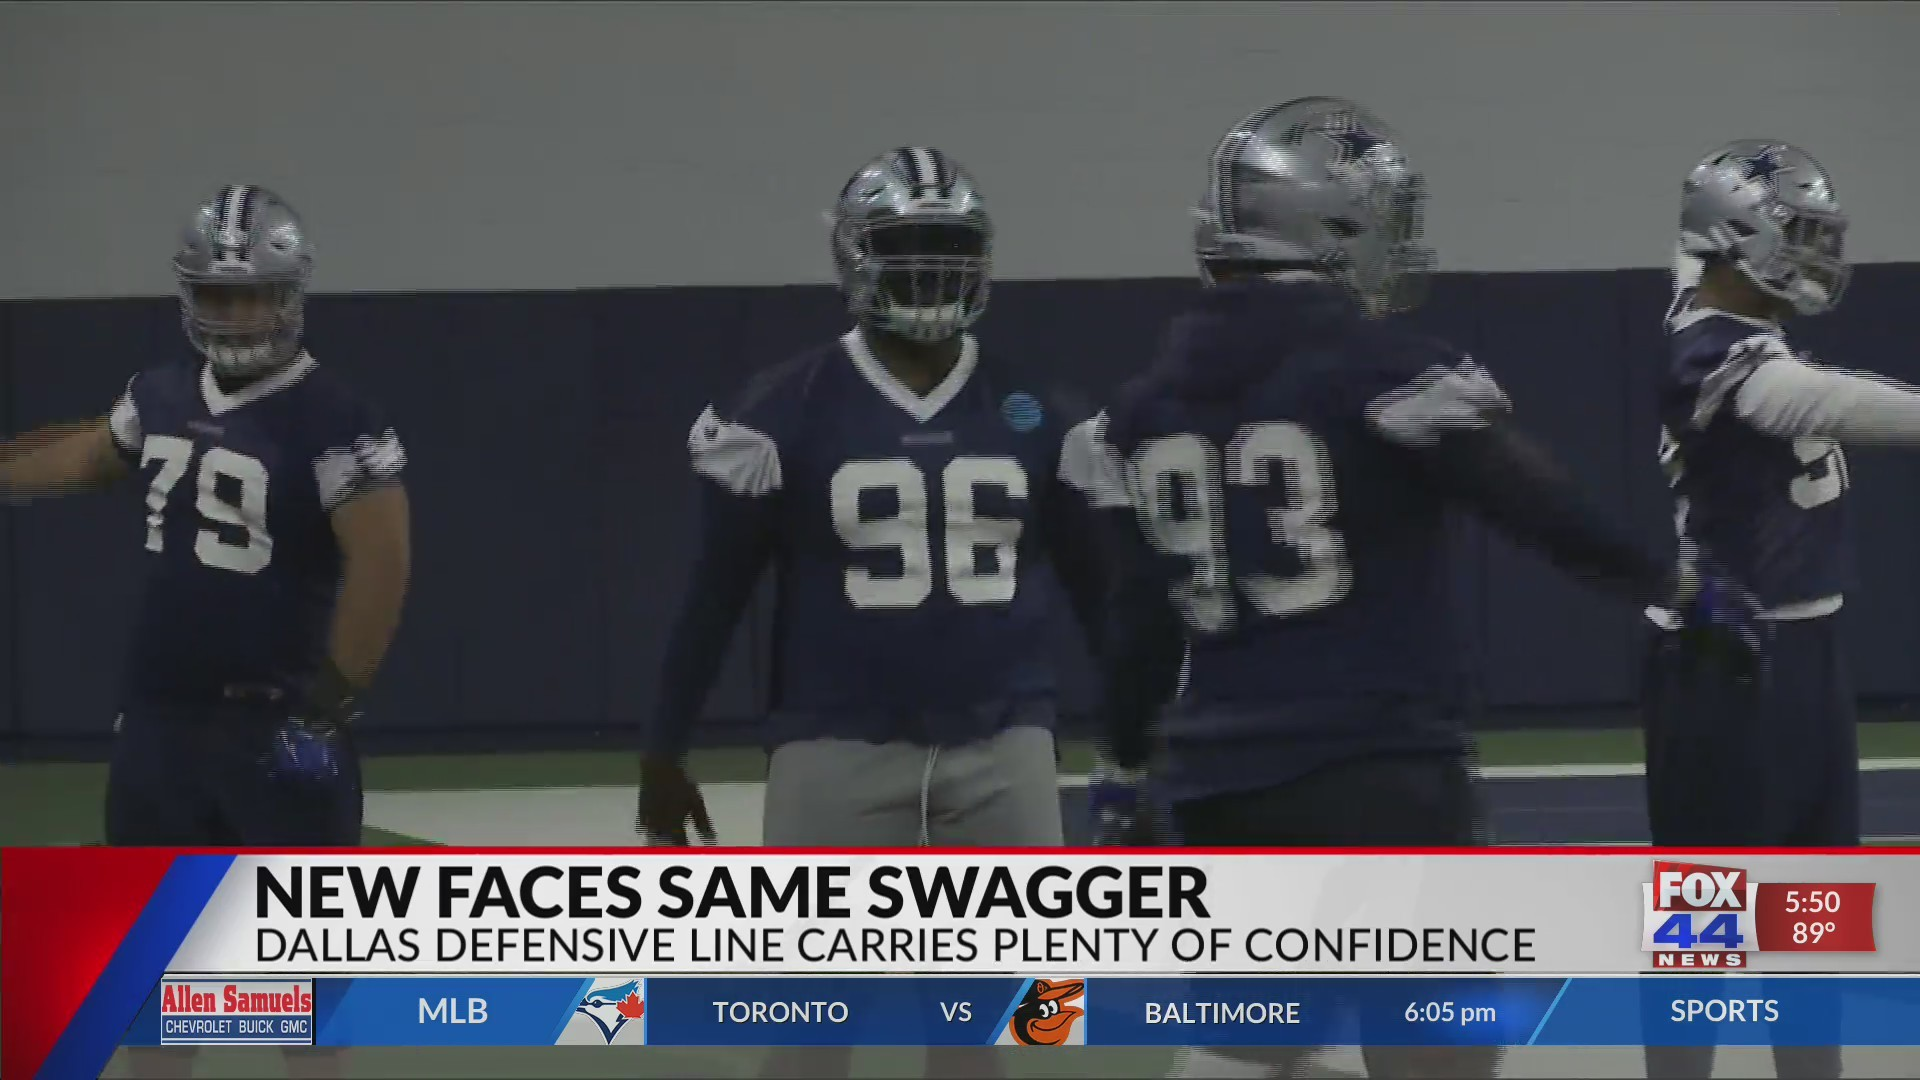 Dallas Cowboys: New Faces, Same Swagger